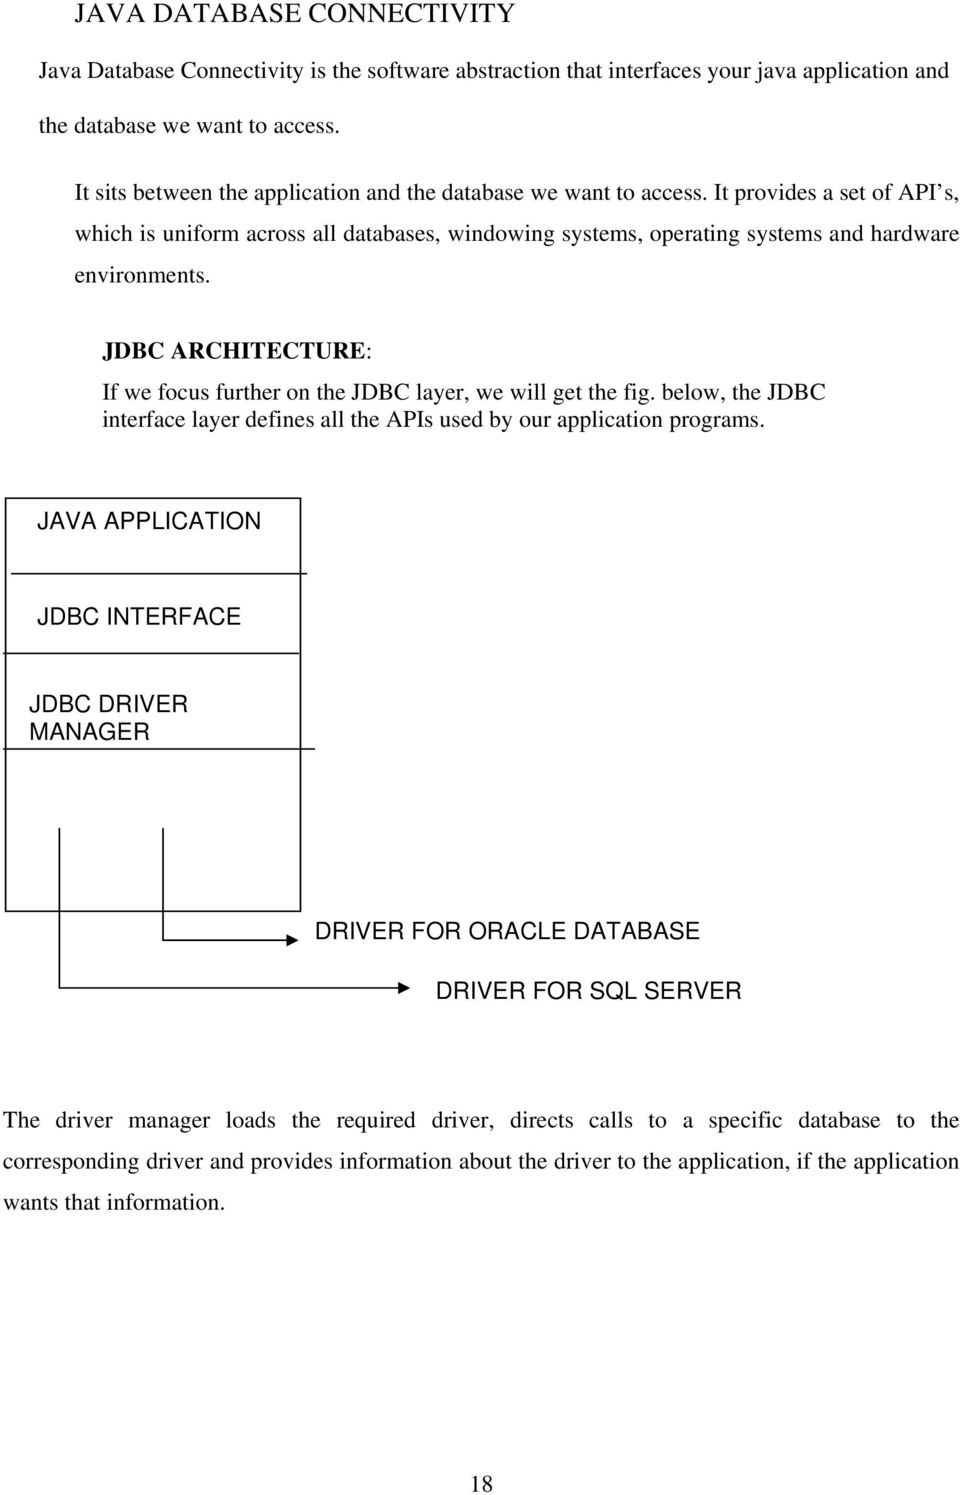 JDBC ARCHITECTURE: If we focus further on the JDBC layer, we will get the fig. below, the JDBC interface layer defines all the APIs used by our application programs.